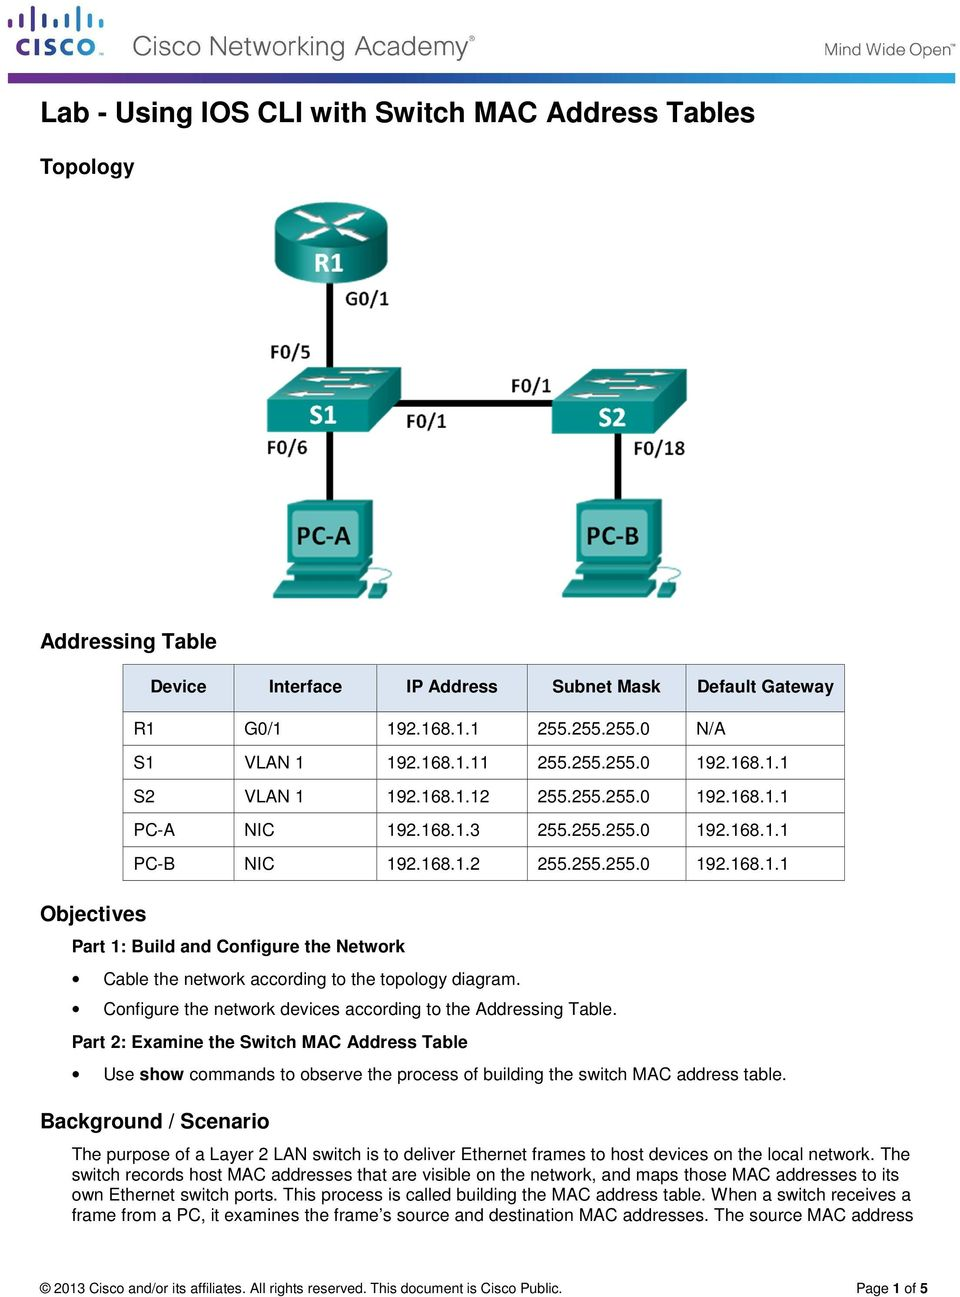 Configure the network devices according to the Addressing Table. Part 2: Examine the Switch MAC Address Table Use show commands to observe the process of building the switch MAC address table.